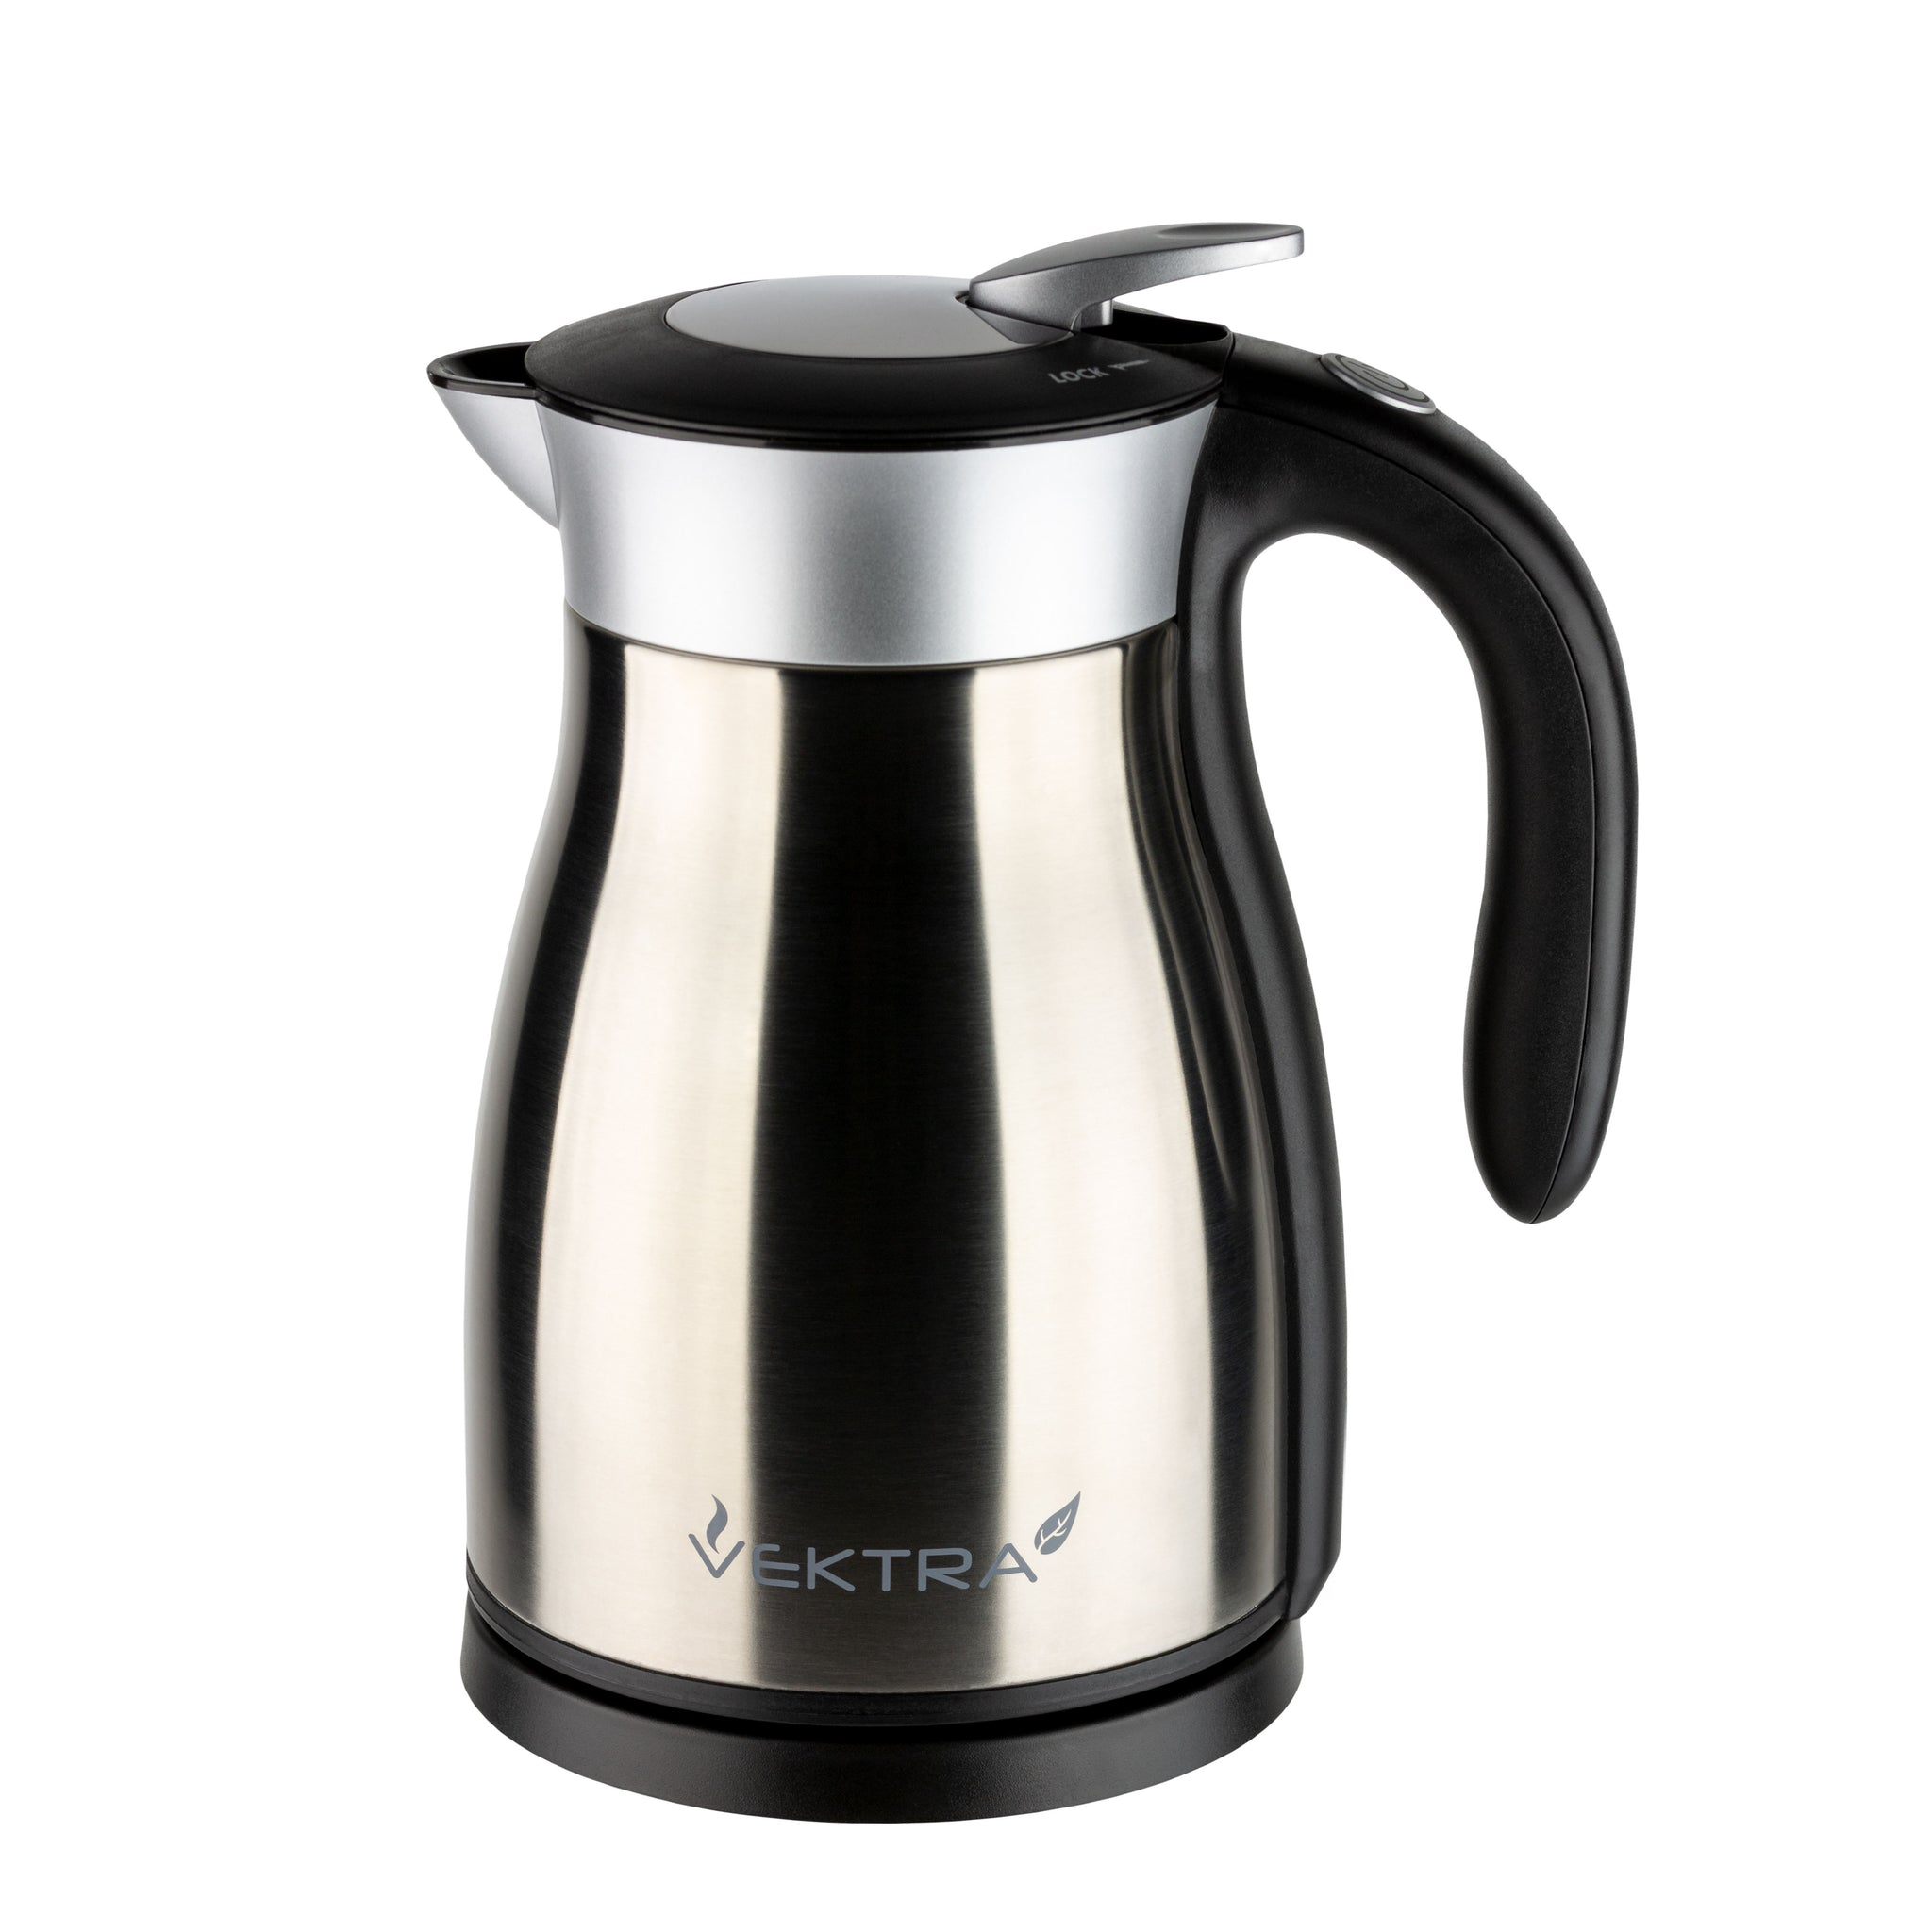 Vektra 1.5L Stainless Steel